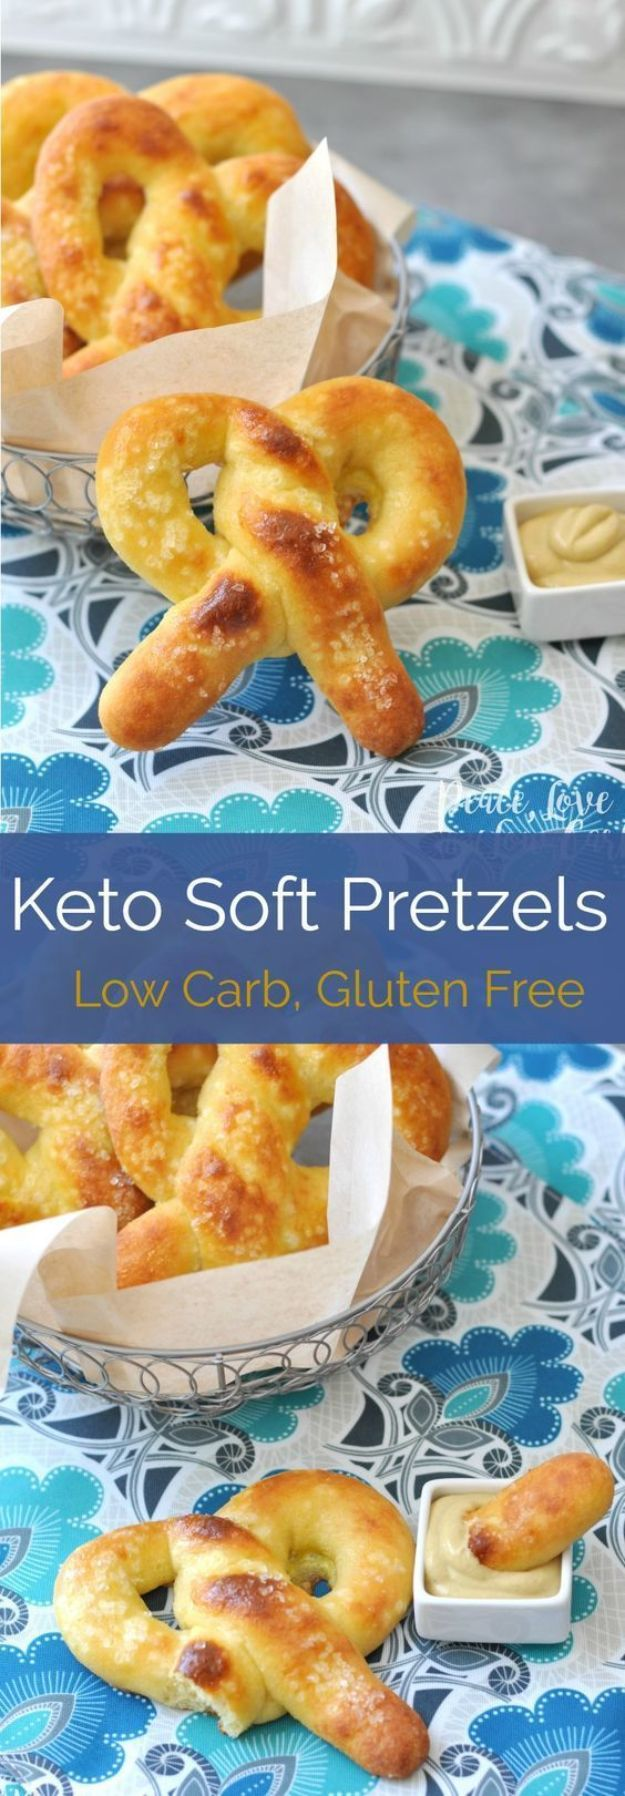 Keto Breakfast Recipes - Keto Soft Pretzel - Low Carb Breakfasts and Morning Meals for the Ketogenic Diet - Low Carbohydrate Foods on the Go - Easy Crockpot Recipes and Casserole - Muffins and Pancakes, Shake and Smoothie, Ideas With No Eggs http://diyjoy.com/keto-breakfast-recipes